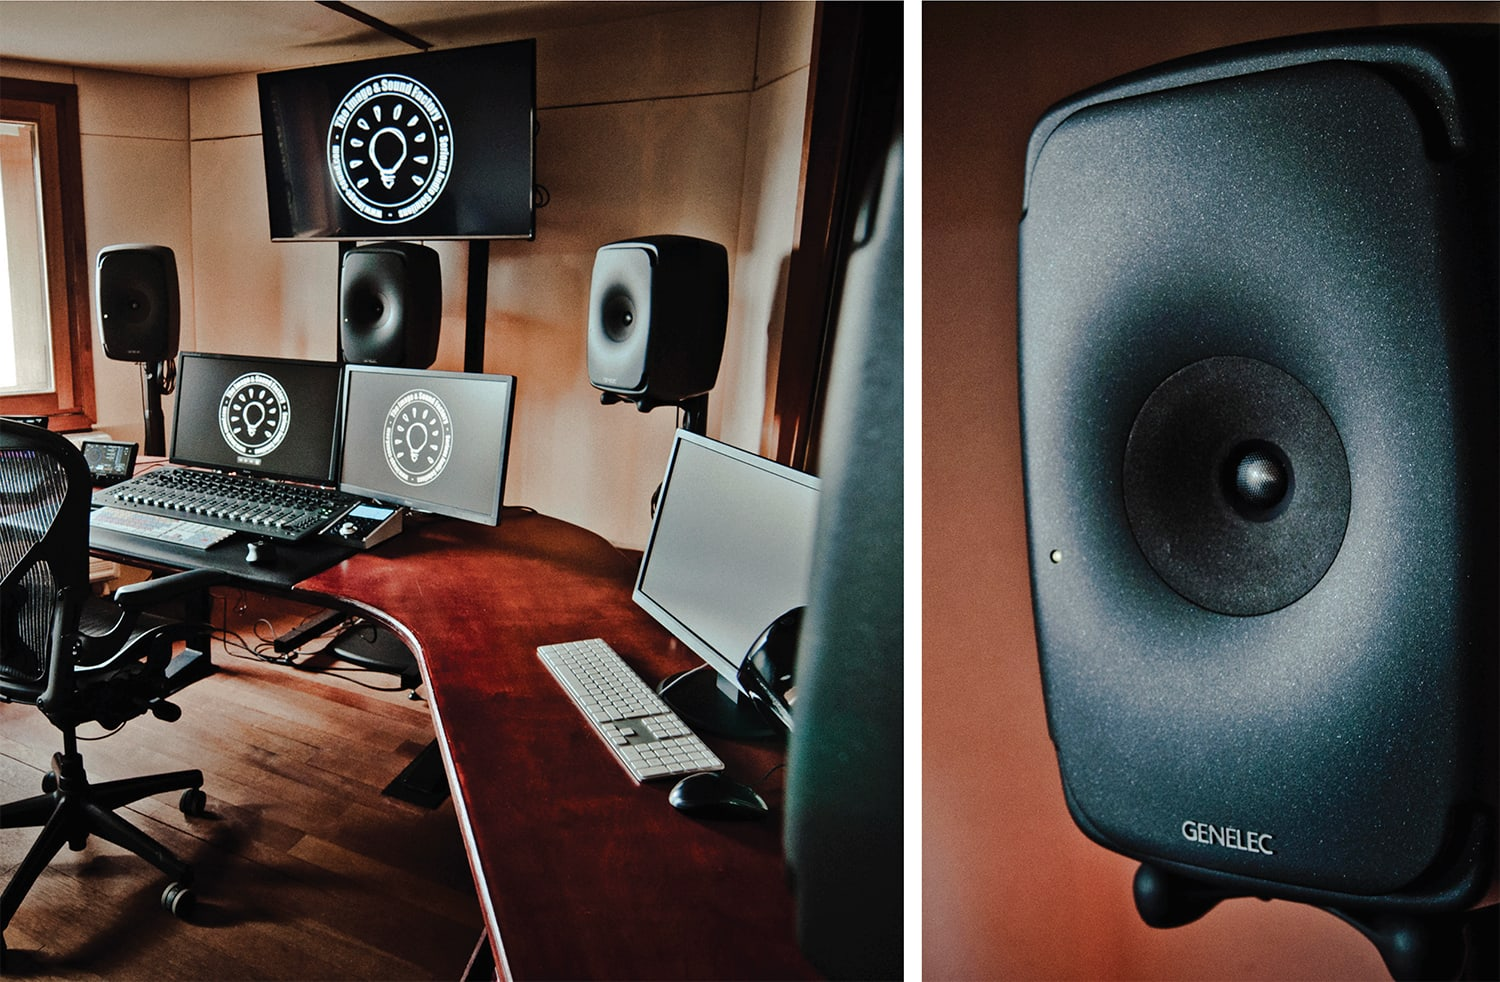 Genelec Case Study: The Image & Sound Factory 2